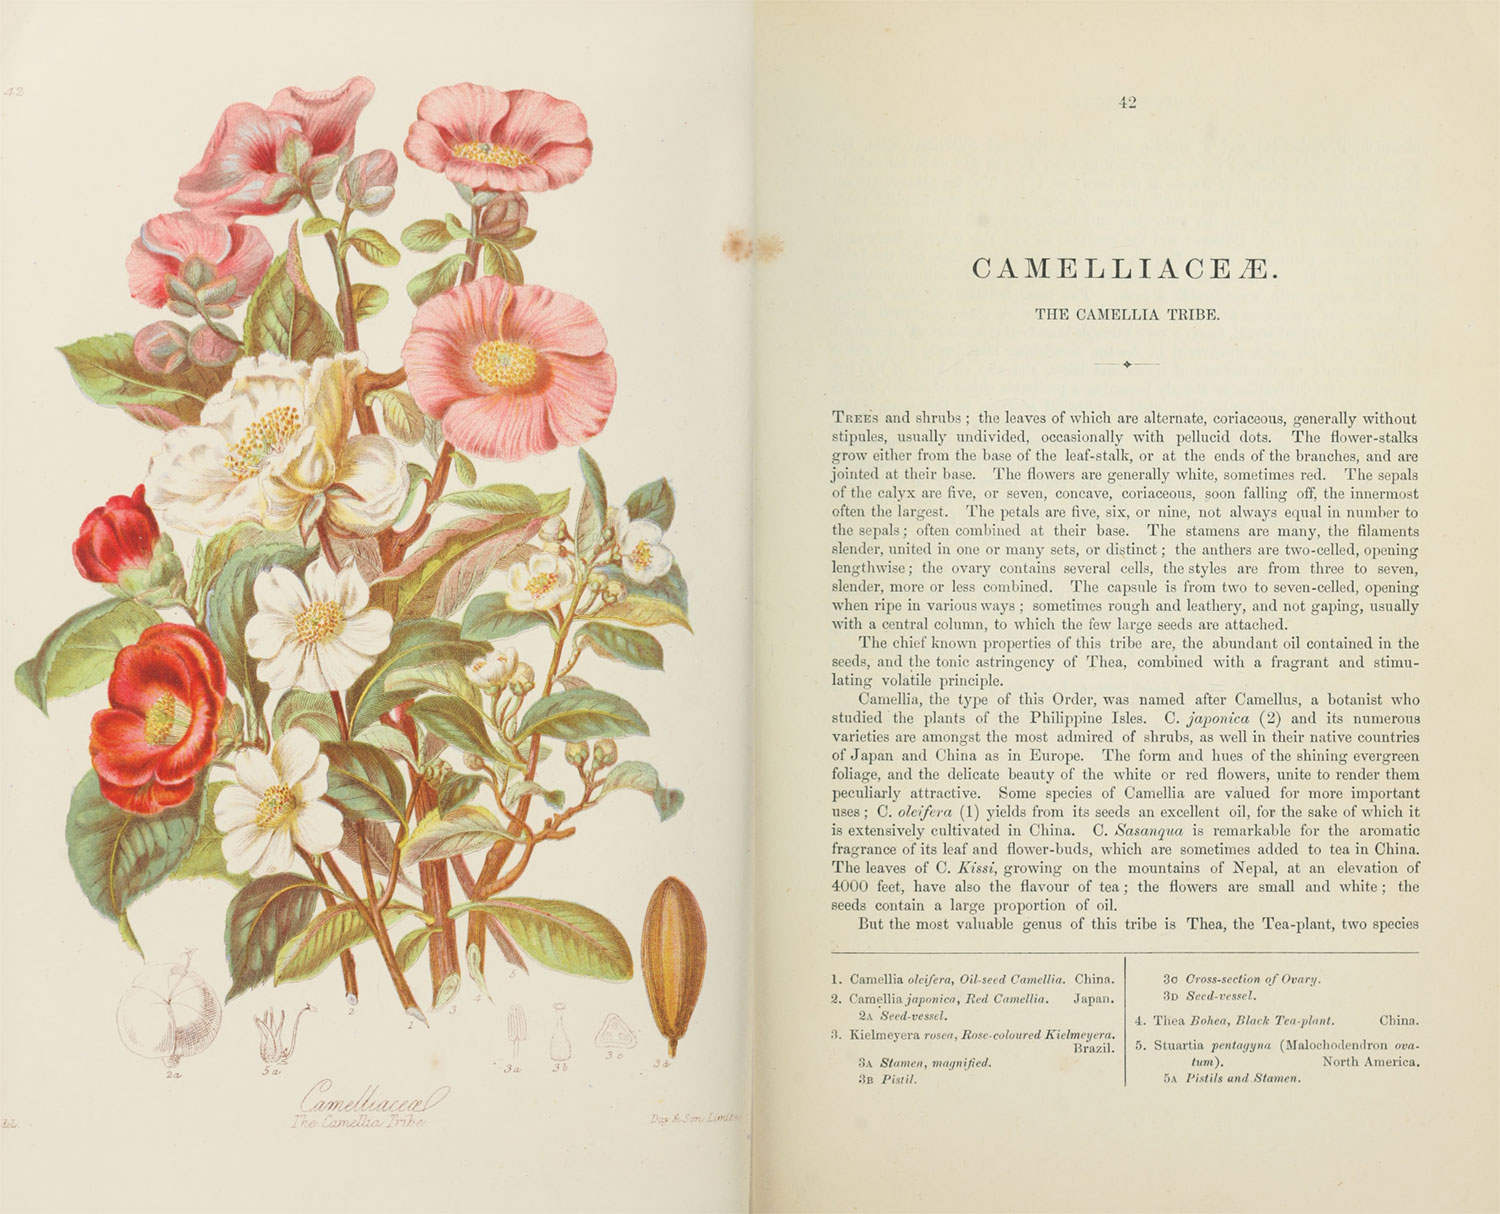 Page spread of scans of the original illustration (left) and first page of description (right) of the camellia tribe